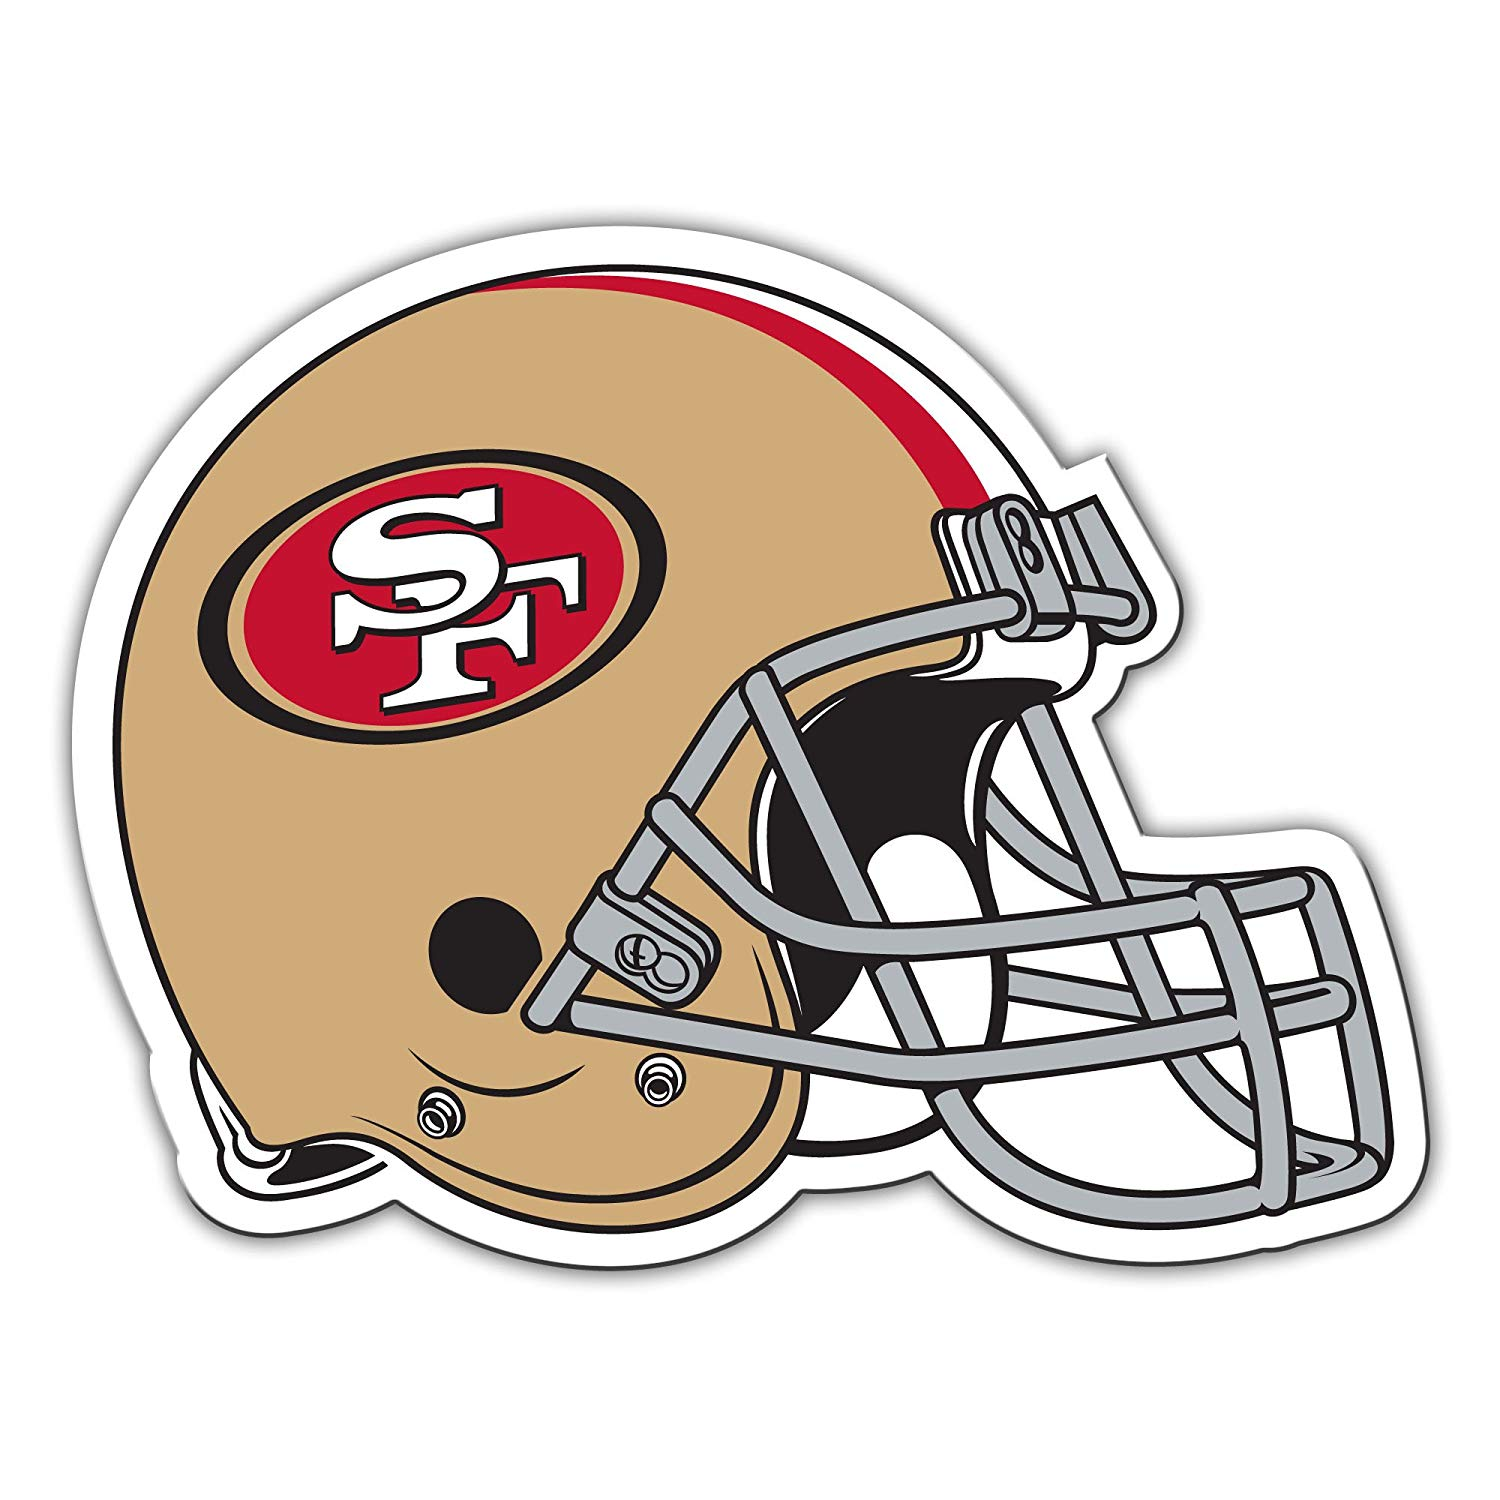 49ers clipart 4 » Clipart Station.